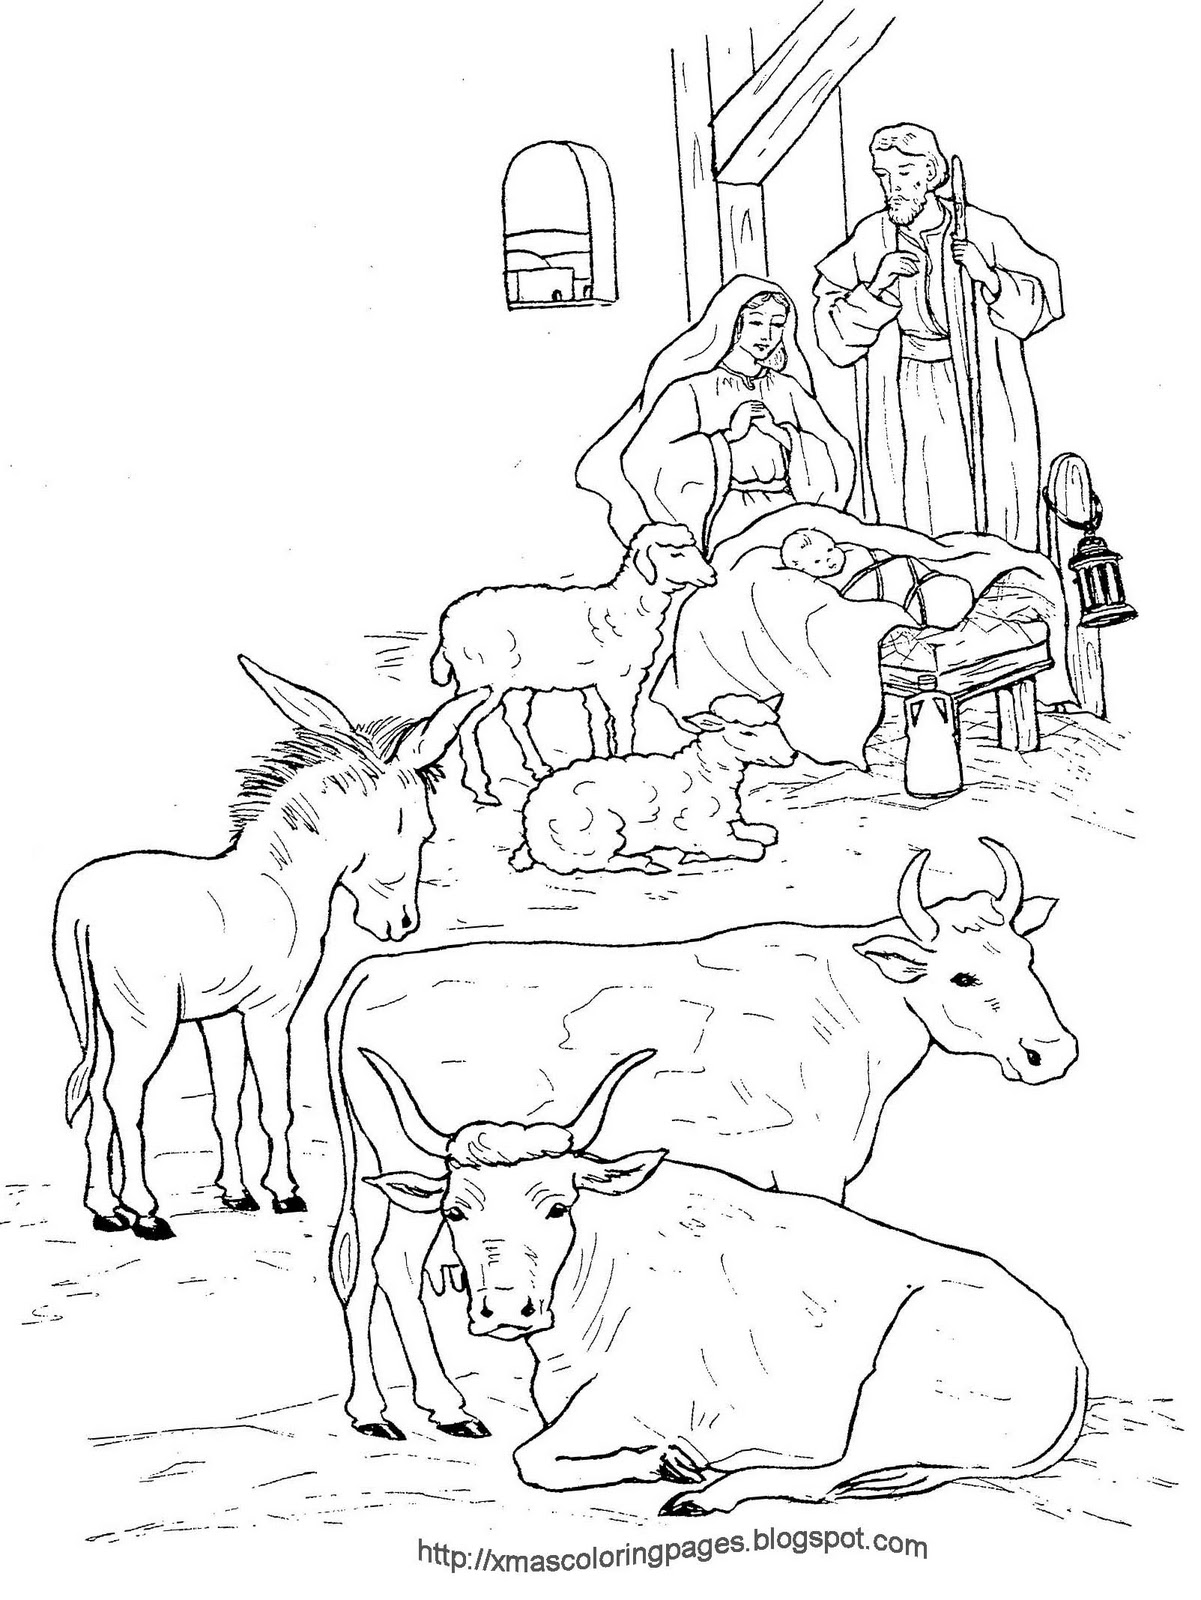 coloring pages baby jesus in manger 243 best images about sunday school pages on pinterest manger jesus coloring in baby pages